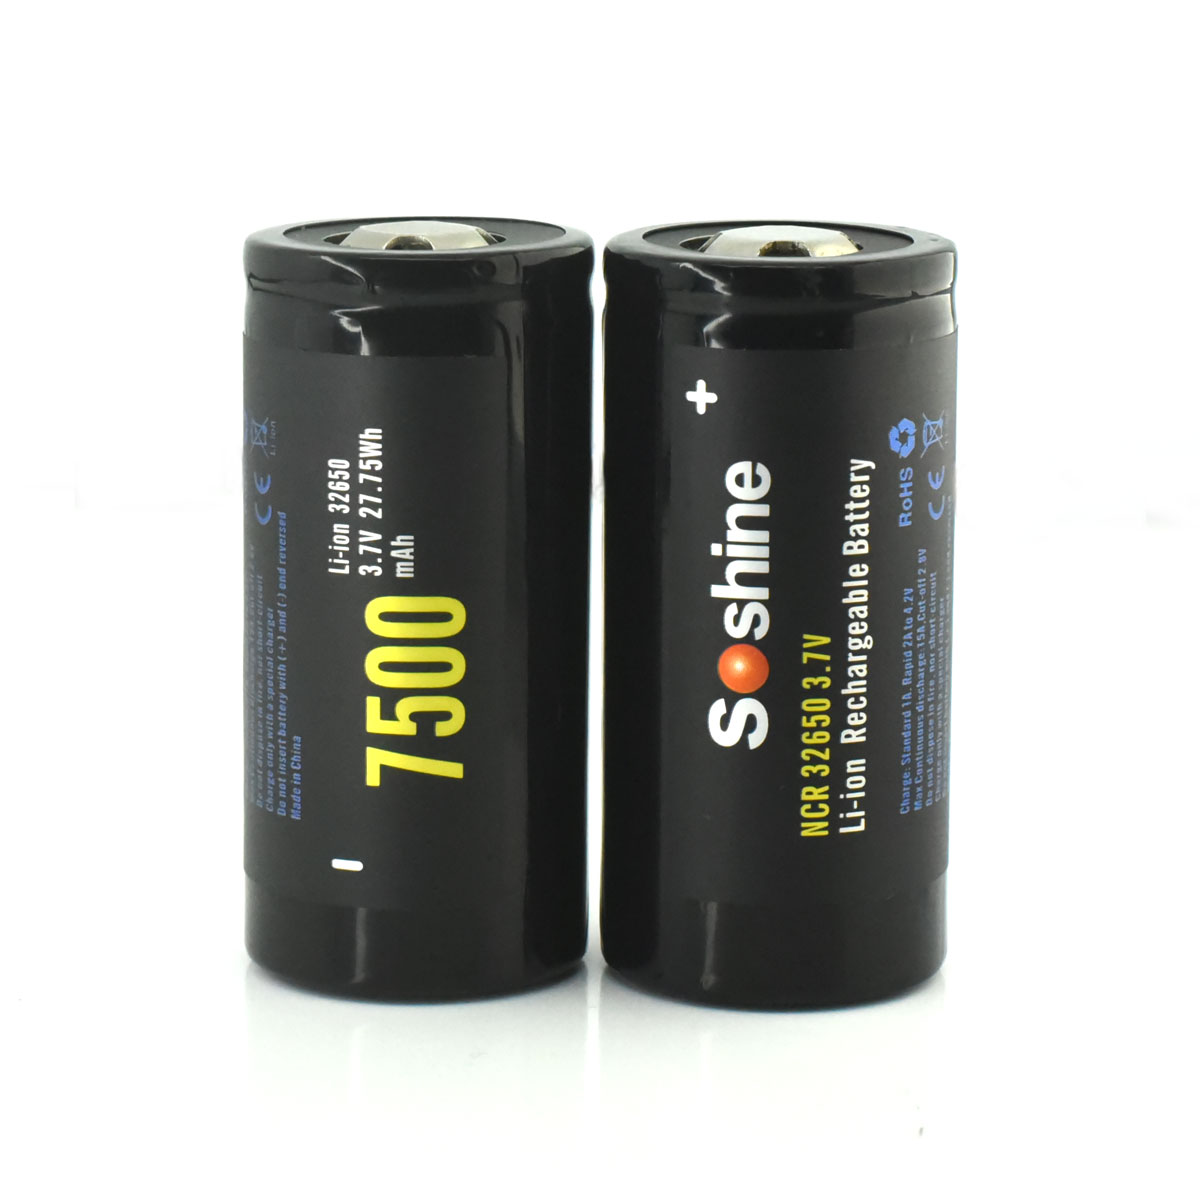 Soshine NCR 32650 7500mAh 15A 3.7v Rechargeable Flat Top Batteries-Black